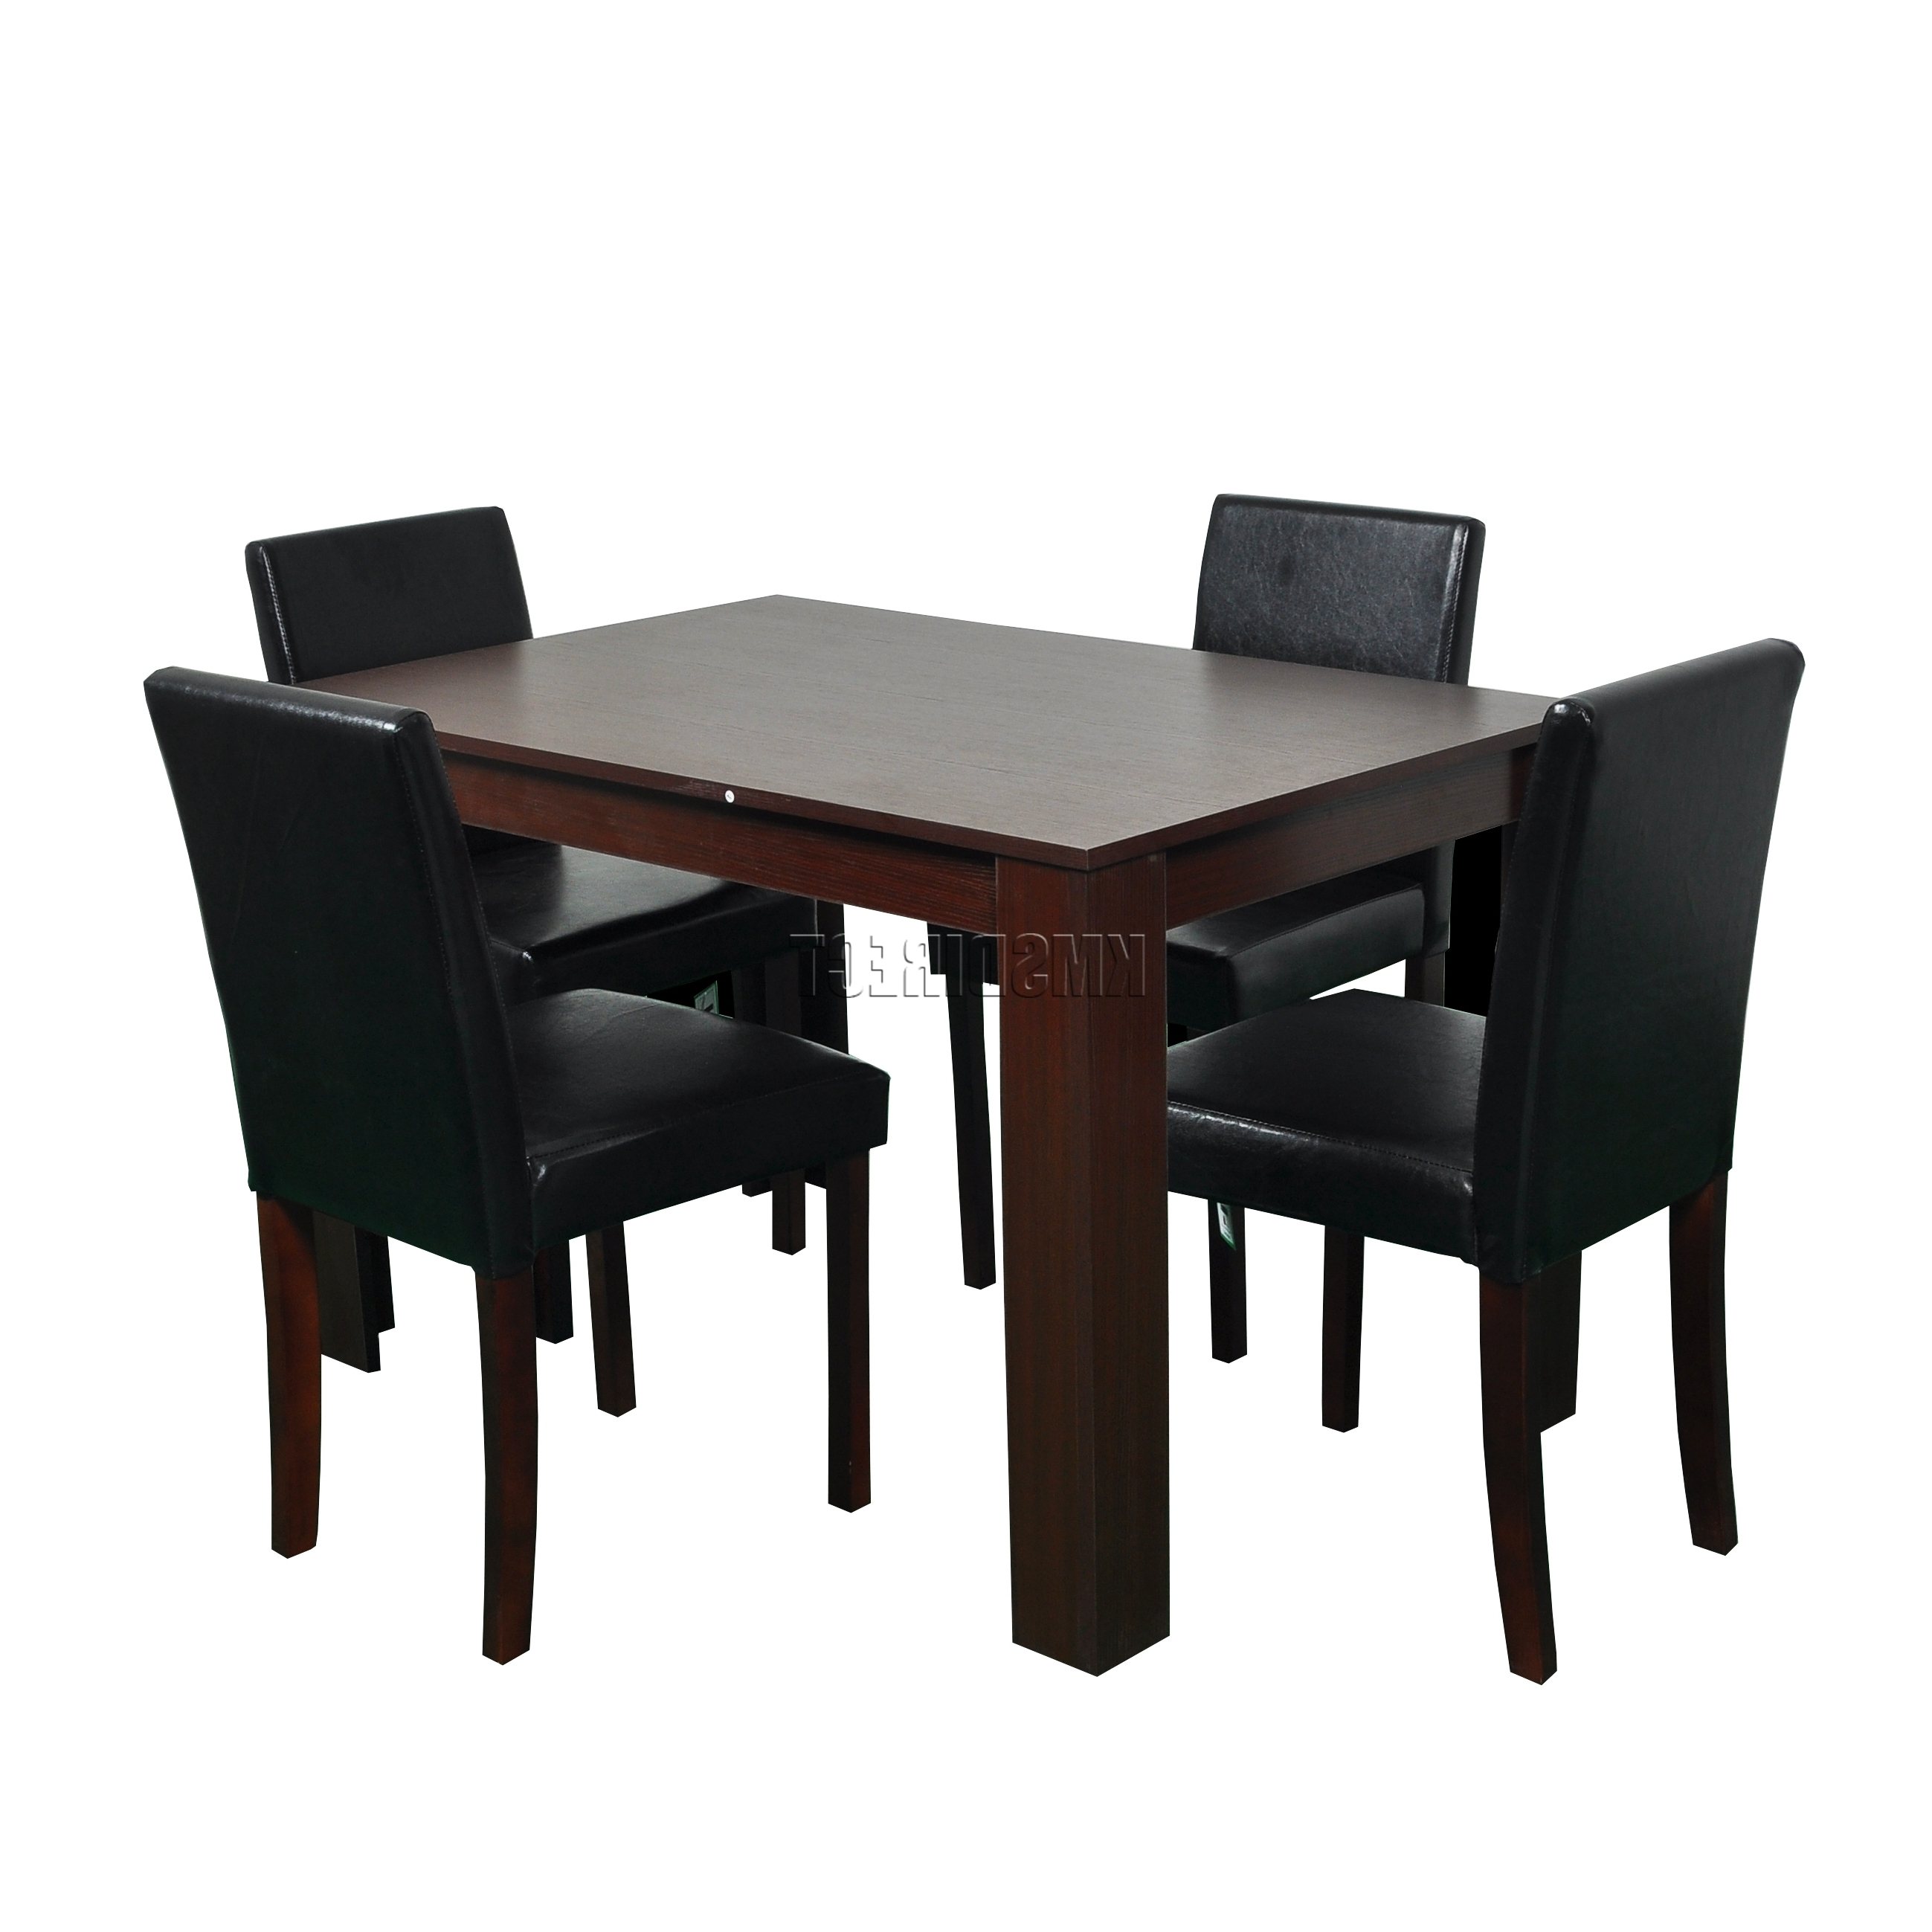 Spare Repair Wooden Dining Table X 4 Pu Faux Leather Chairs Set Throughout Most Popular Wooden Dining Sets (View 17 of 25)